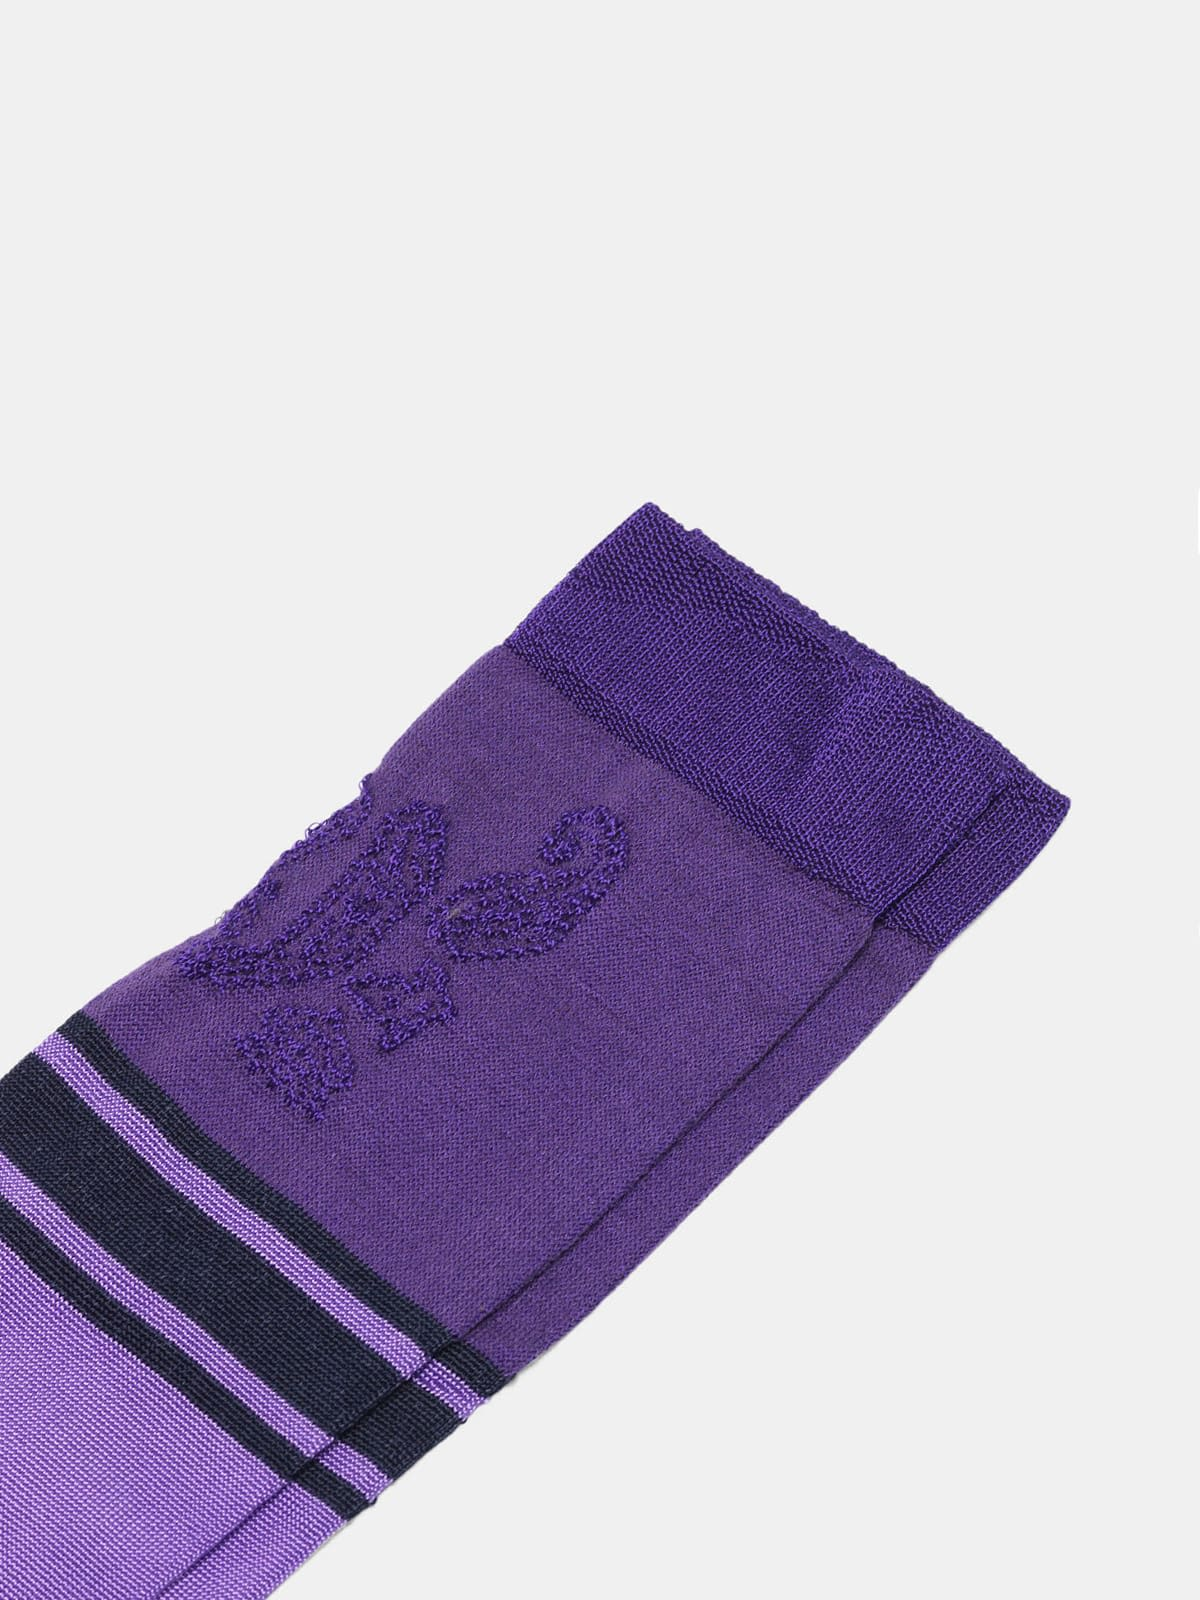 Purple Addison socks with jacquard pattern